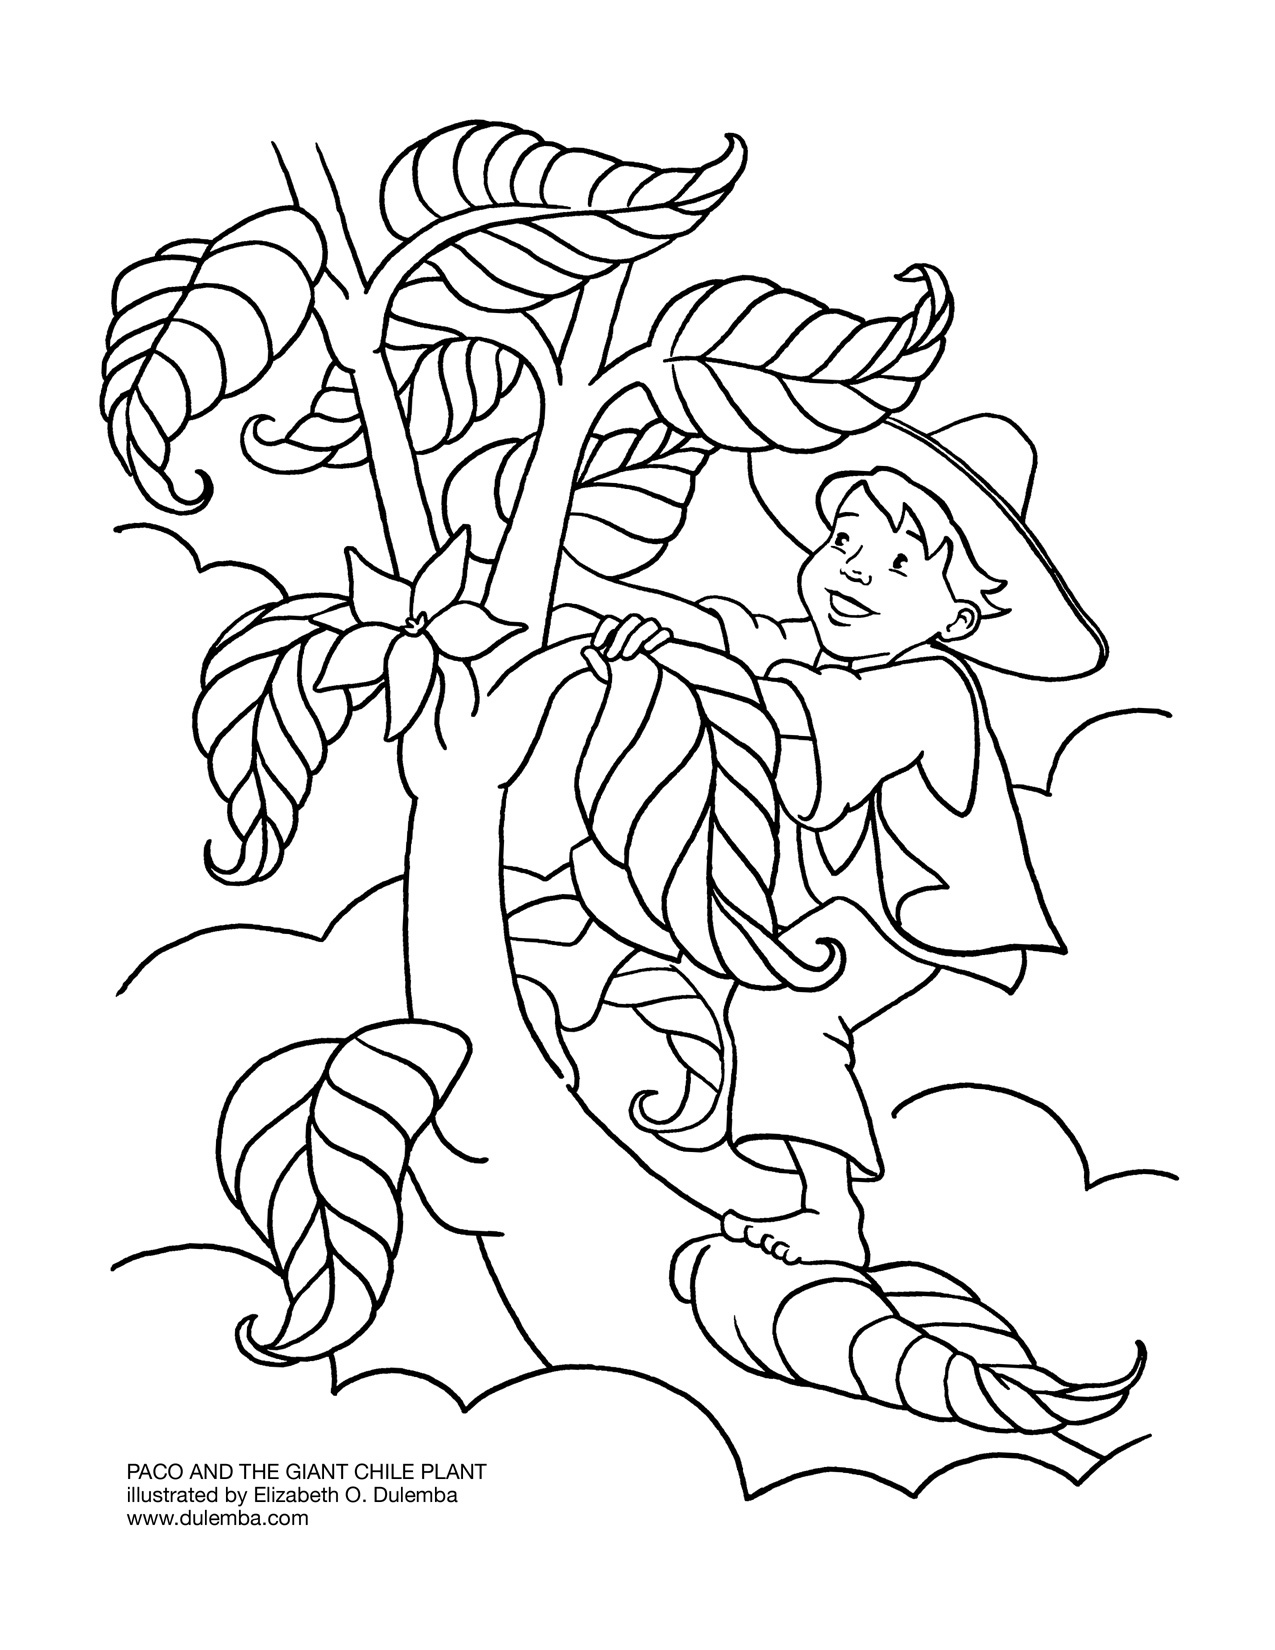 jack and the beanstalk colouring pictures jack beanstalk coloring pages jack the colouring beanstalk pictures and